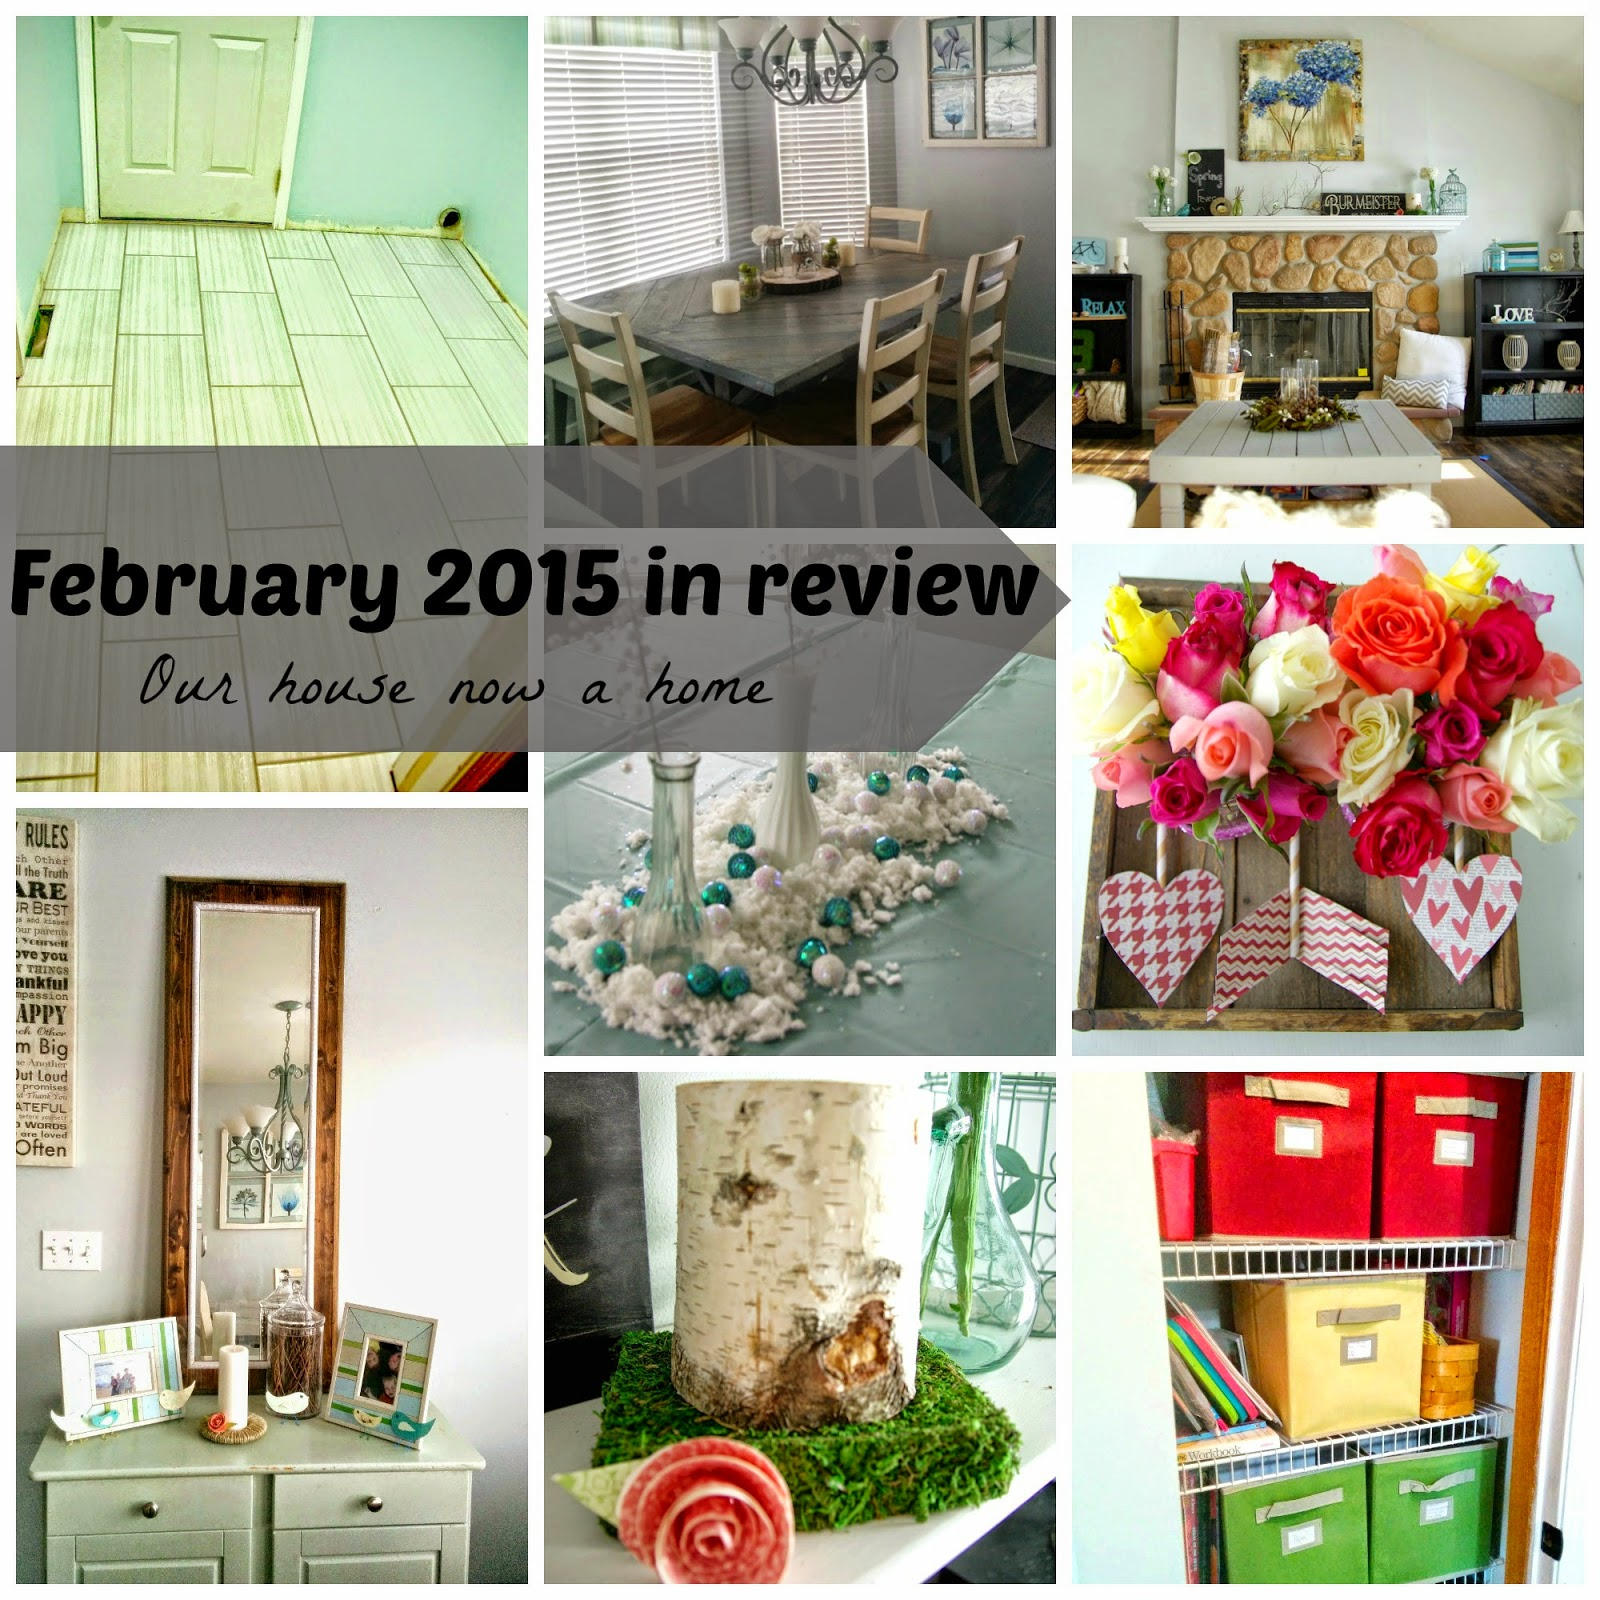 February 2015 in review